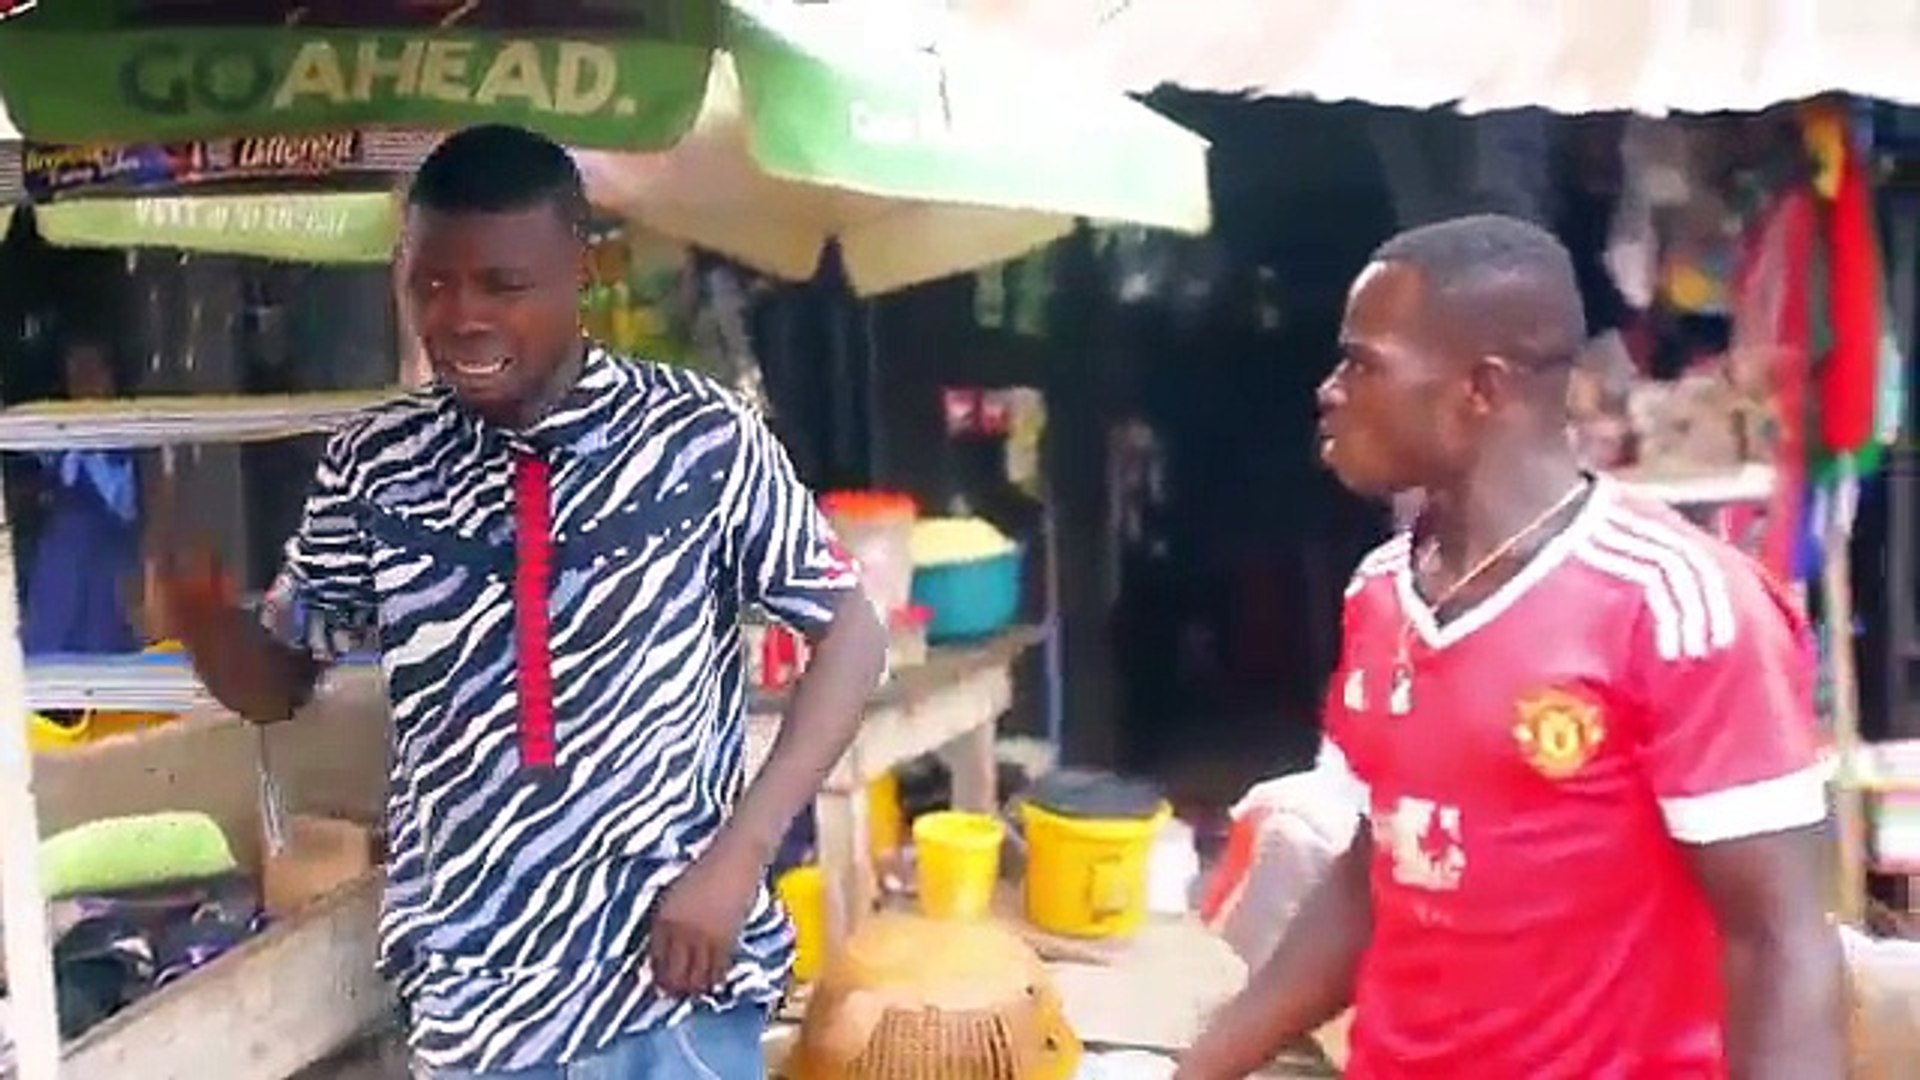 THE BREAD  || LATEST NOLLYWOOD MOVIES || NIGERIAN NOLLYWOOD MOVIES || 2018 NOLLYWOOD MOVIES